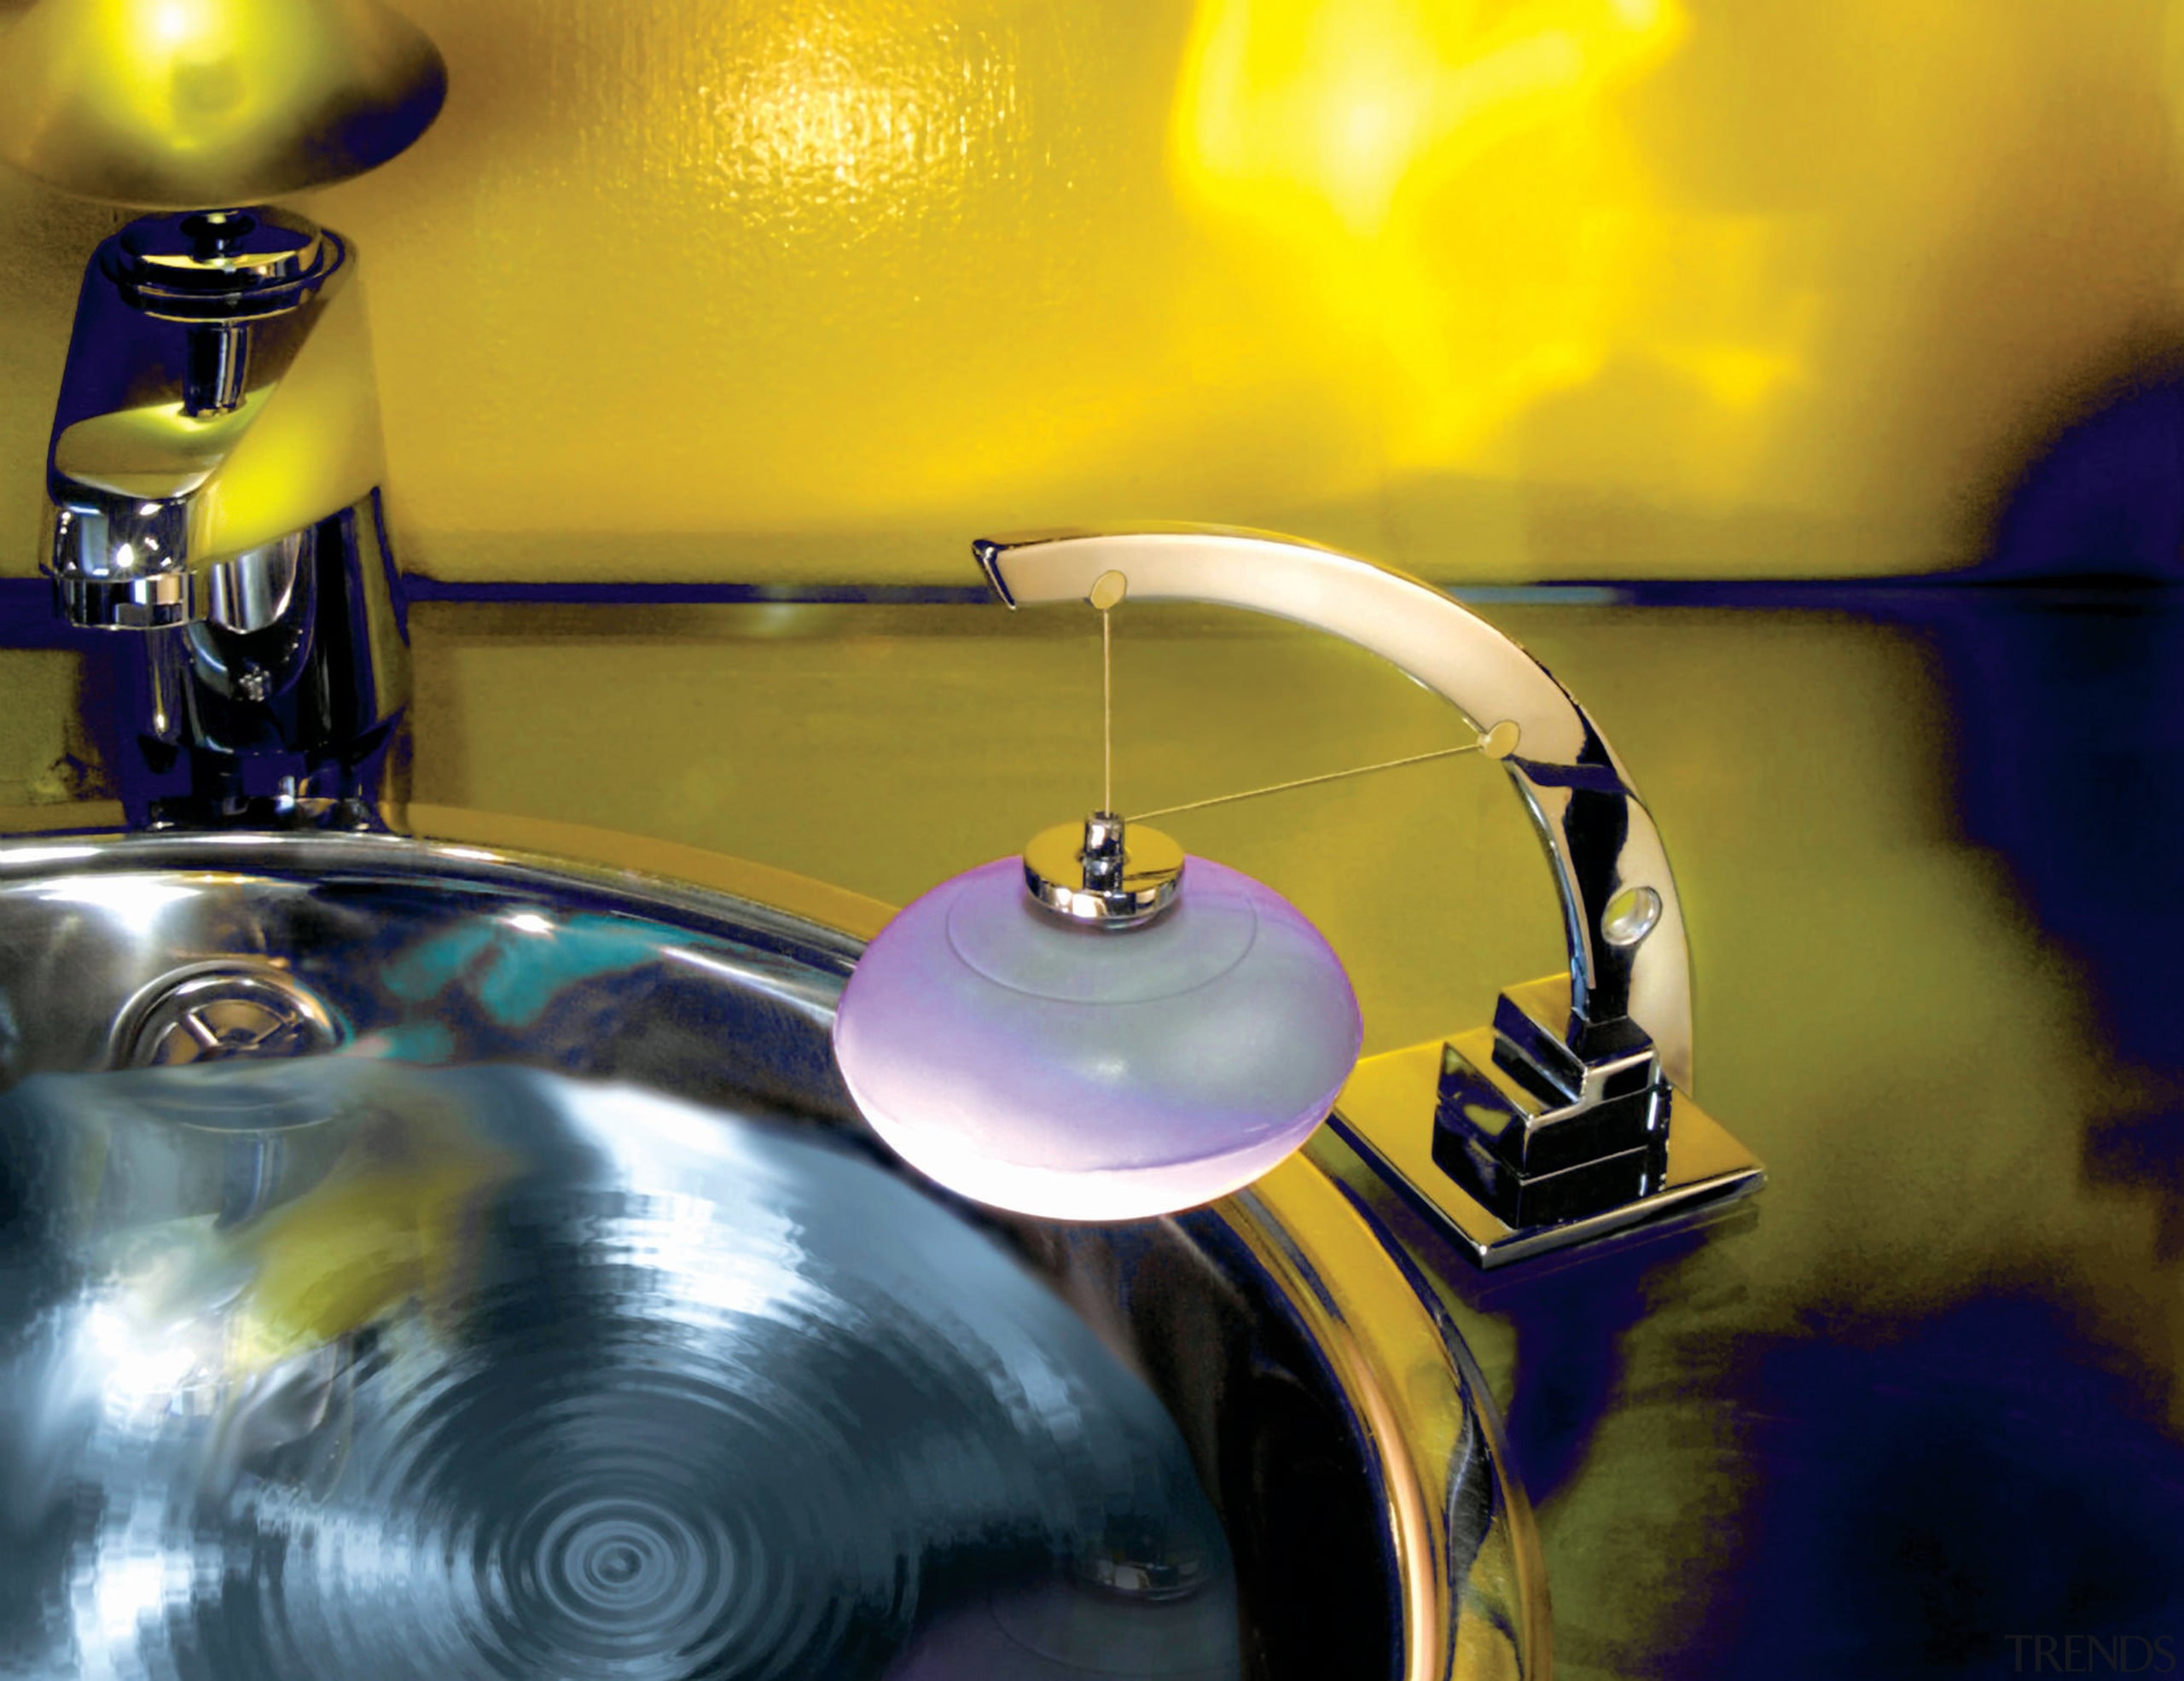 View fo the magnetic soap holder - View drum, drums, musical instrument, purple, tom tom drum, yellow, brown